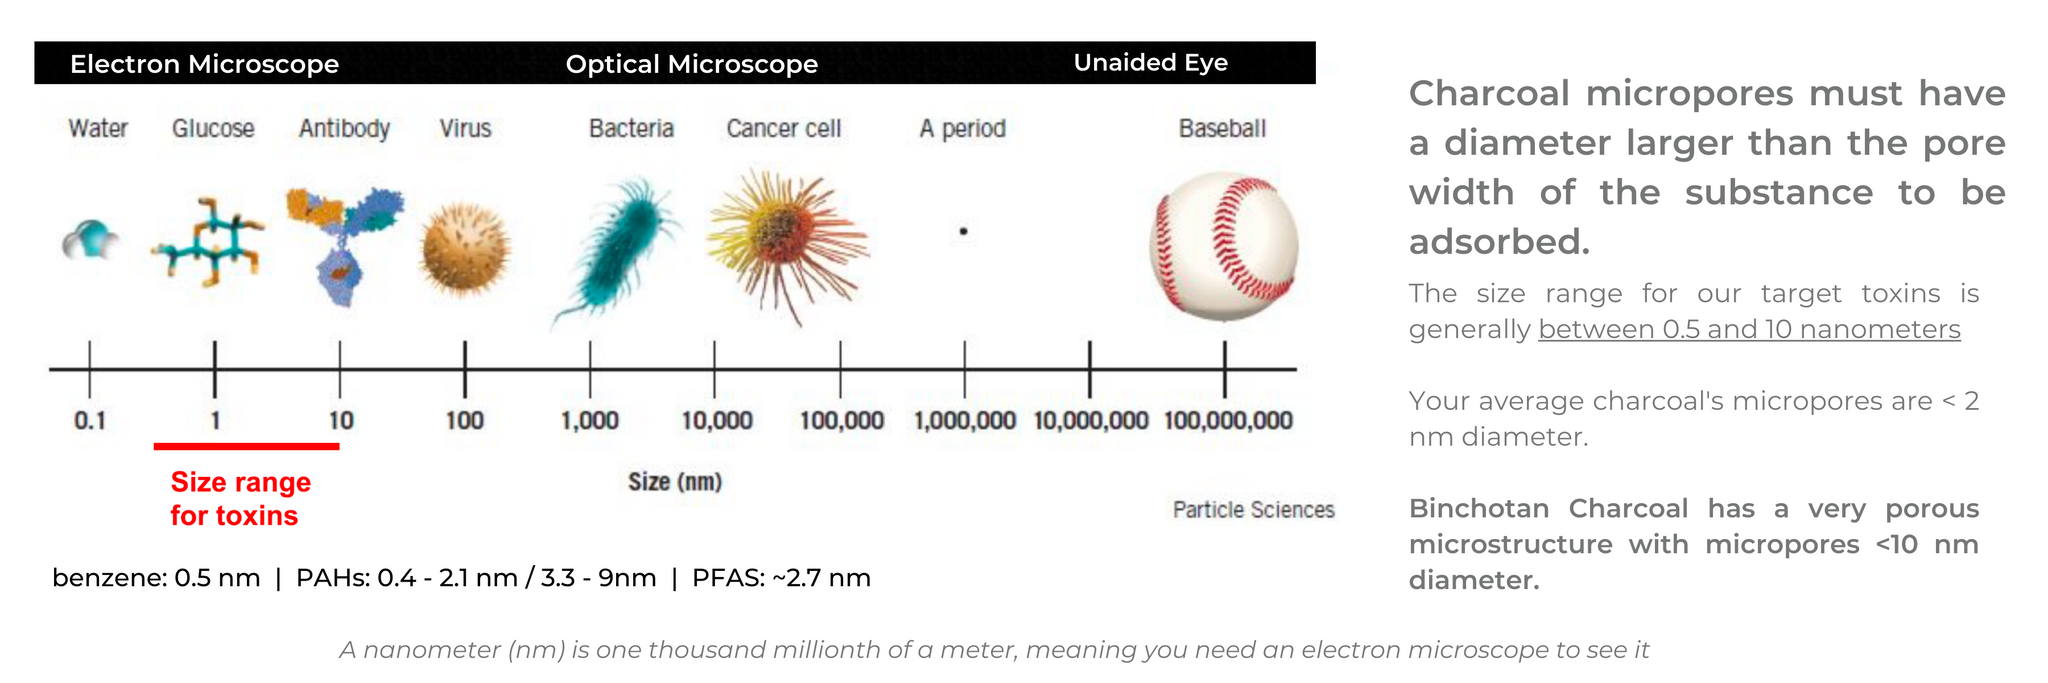 Chart showing size comparisons of particles in nanometers. Size range for toxins fall within 0.5 to 10 nanometers. The scale goes larger with virus cells, bacteria, cancer cells, all the way up to a baseball. A nanometer (nm) is one thousand millionth of a meter, meaning you need  an electron microscope to see it. Accompanying text reads: In order for a contaminate to be adsorbed, it must 'fit' within the pores presented by the Charcoal. In other words, the Charcoal micropores must have a diameter larger than the pore width of the substance to be adsorbed.  The size range for our target toxins is generally between 0.5 and 10 nanometers *  Your average charcoal's micropores are < 2 nm diameter.  Binchotan Charcoal has a very porous microstructure with micropores <10 nm diameter.